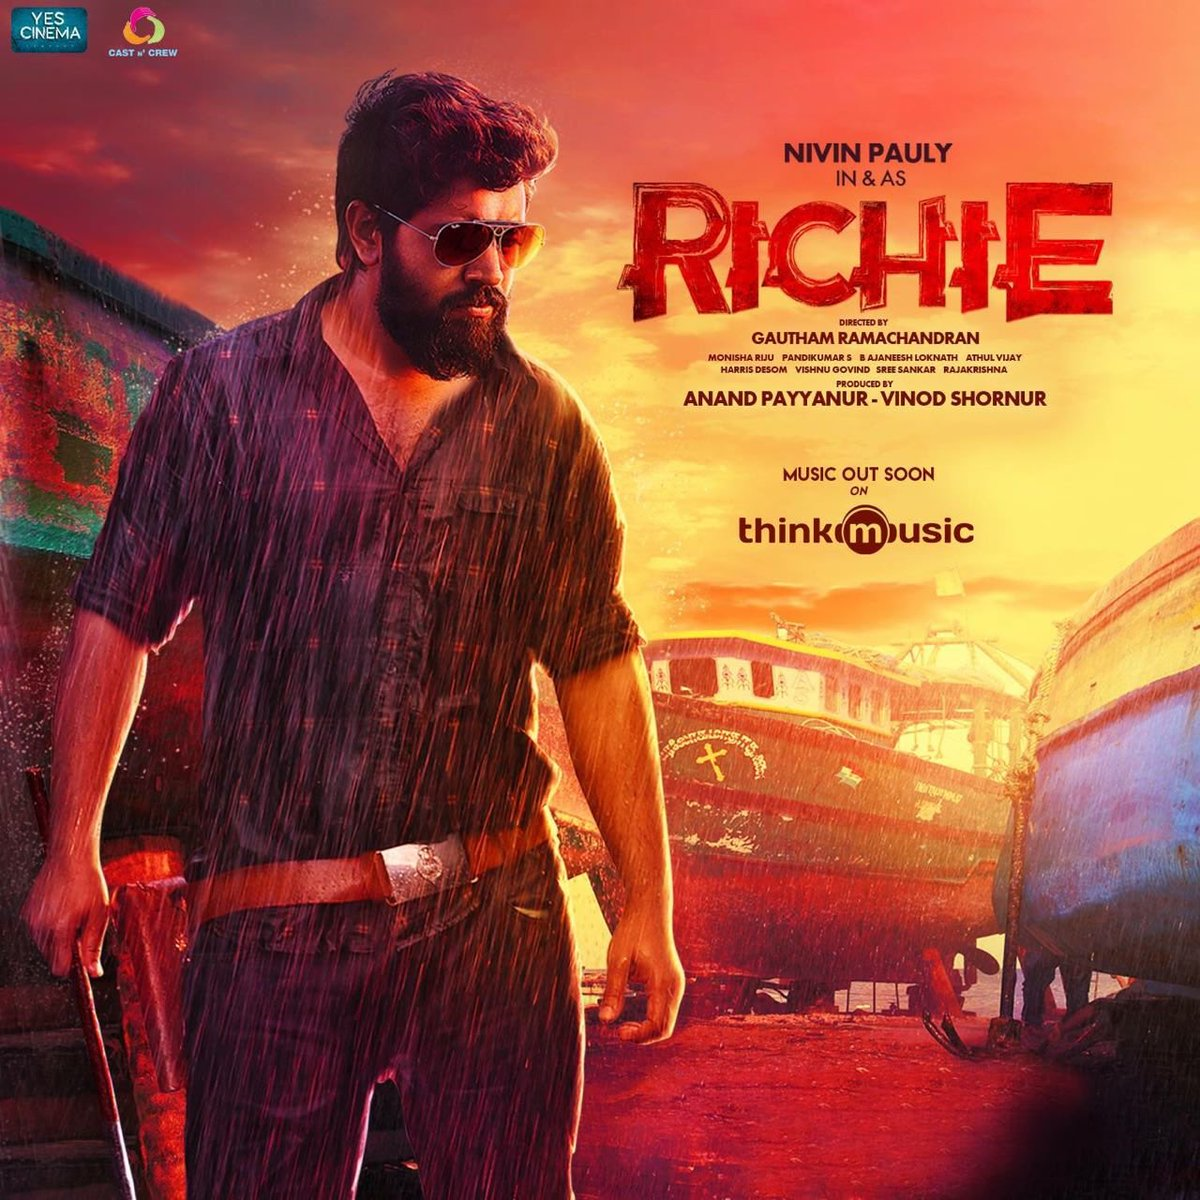 Richie 3rd Day Box Office Collection